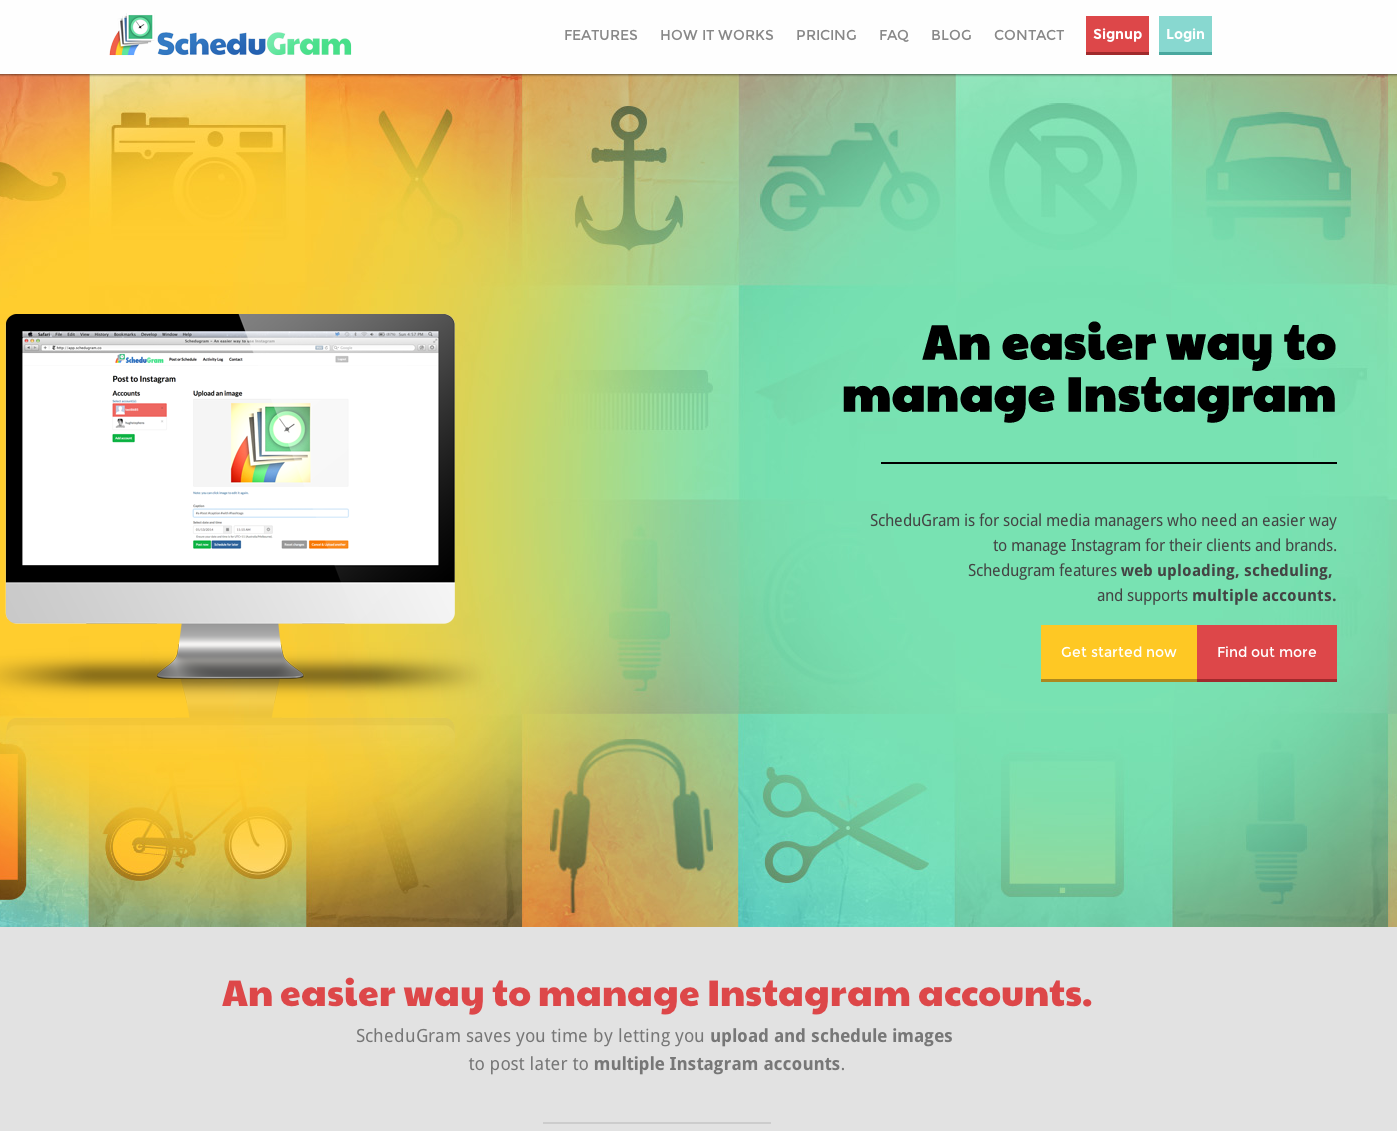 Schedugram: The Only Fully Automated Scheduling for Instagram